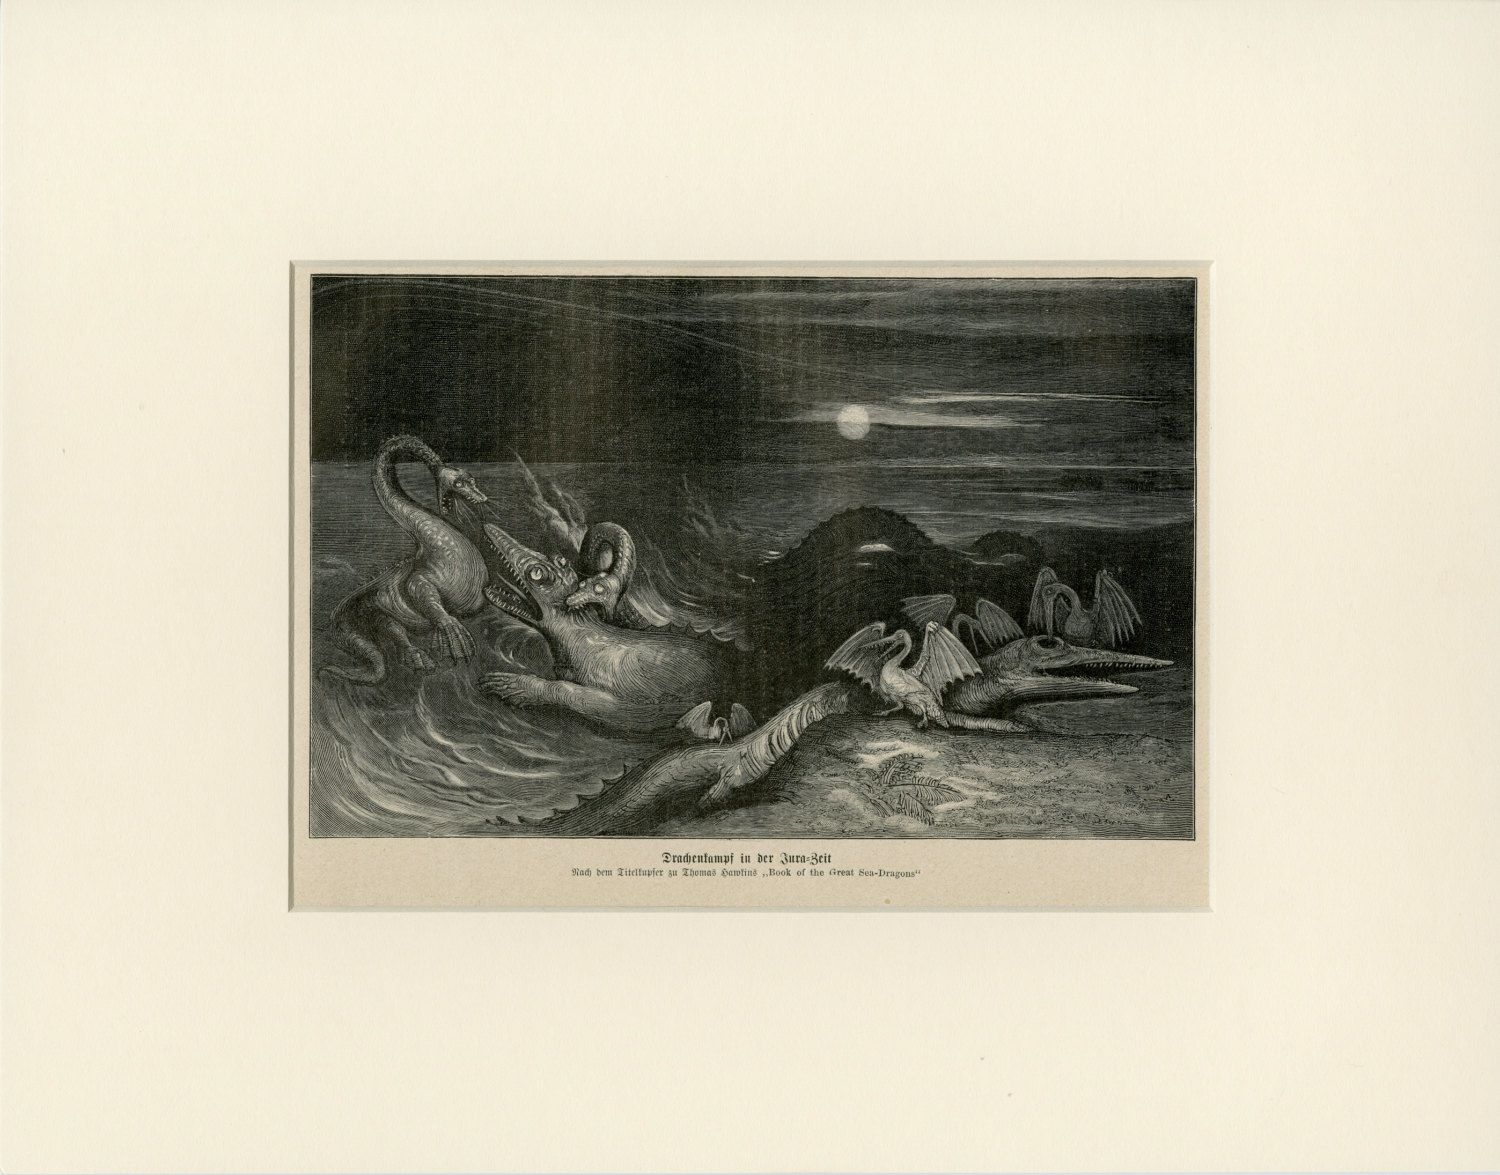 Dinosaur Sea Monster Art Print C 1900 Antique Engraving From Germany Wall Hanging Home Decor Gift Ready To Frame